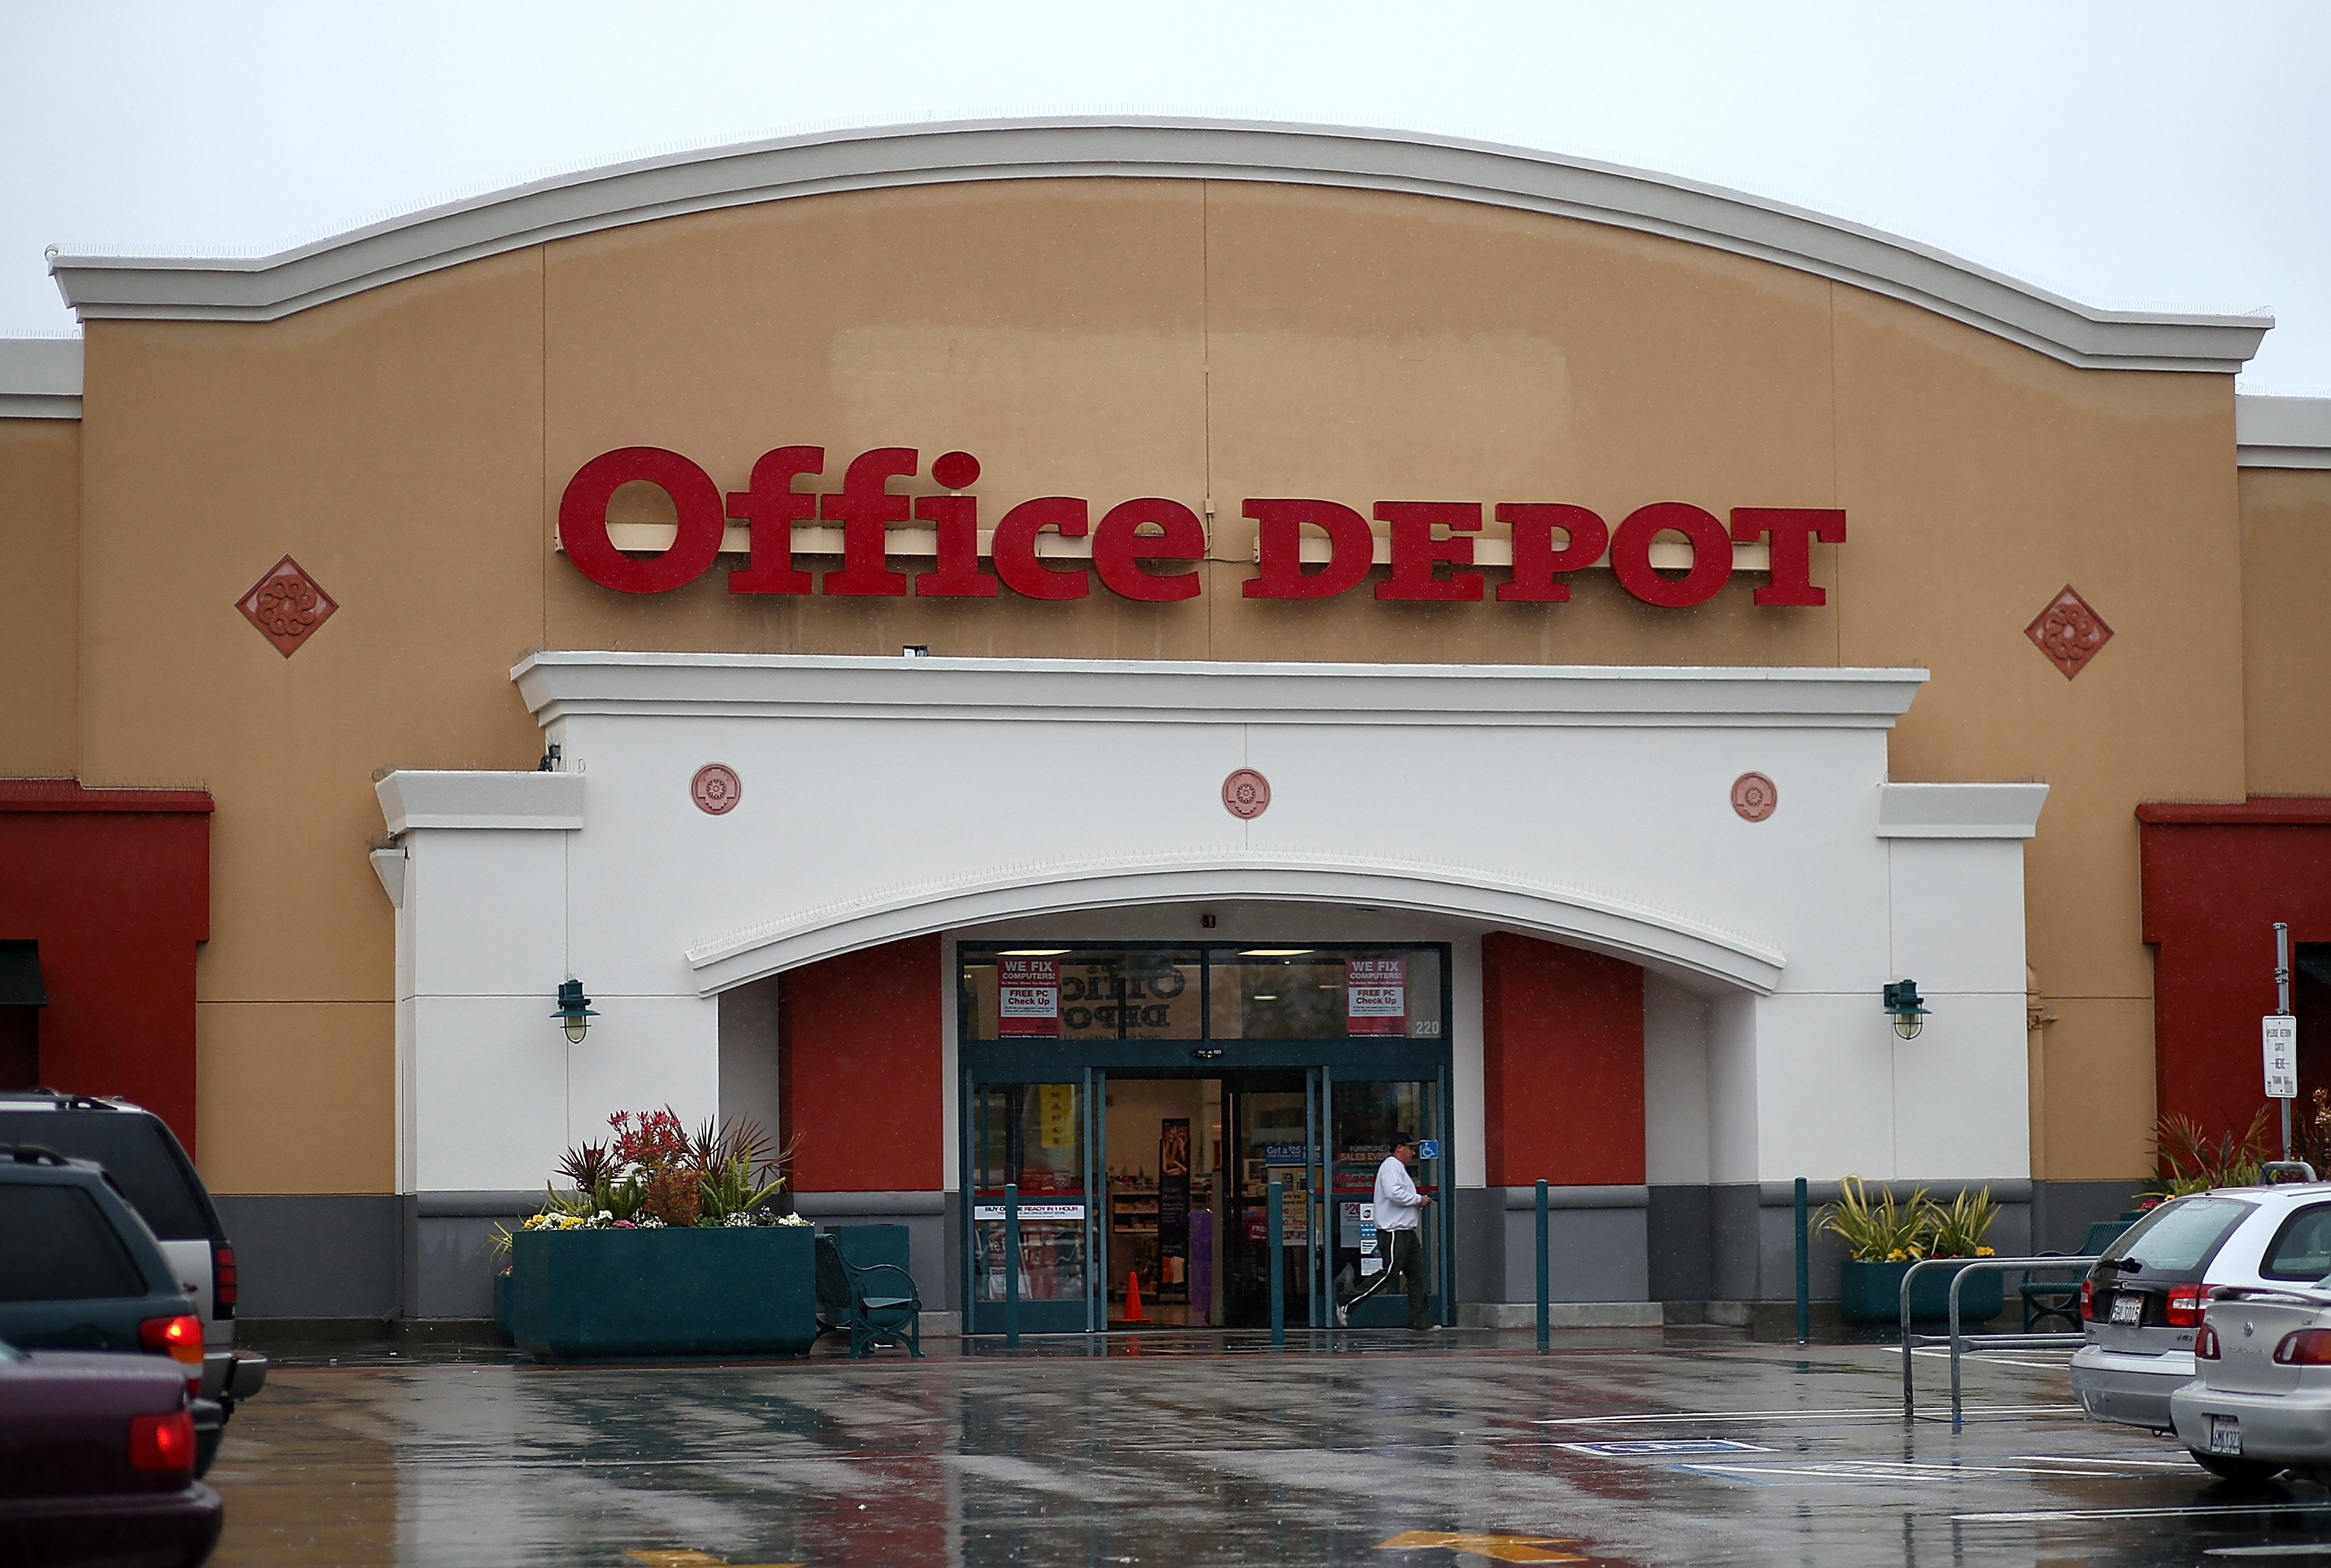 Charmant Office Depot To Close At Least 400 Stores As Part Of Merger With OfficeMax  | Business | Dallas News